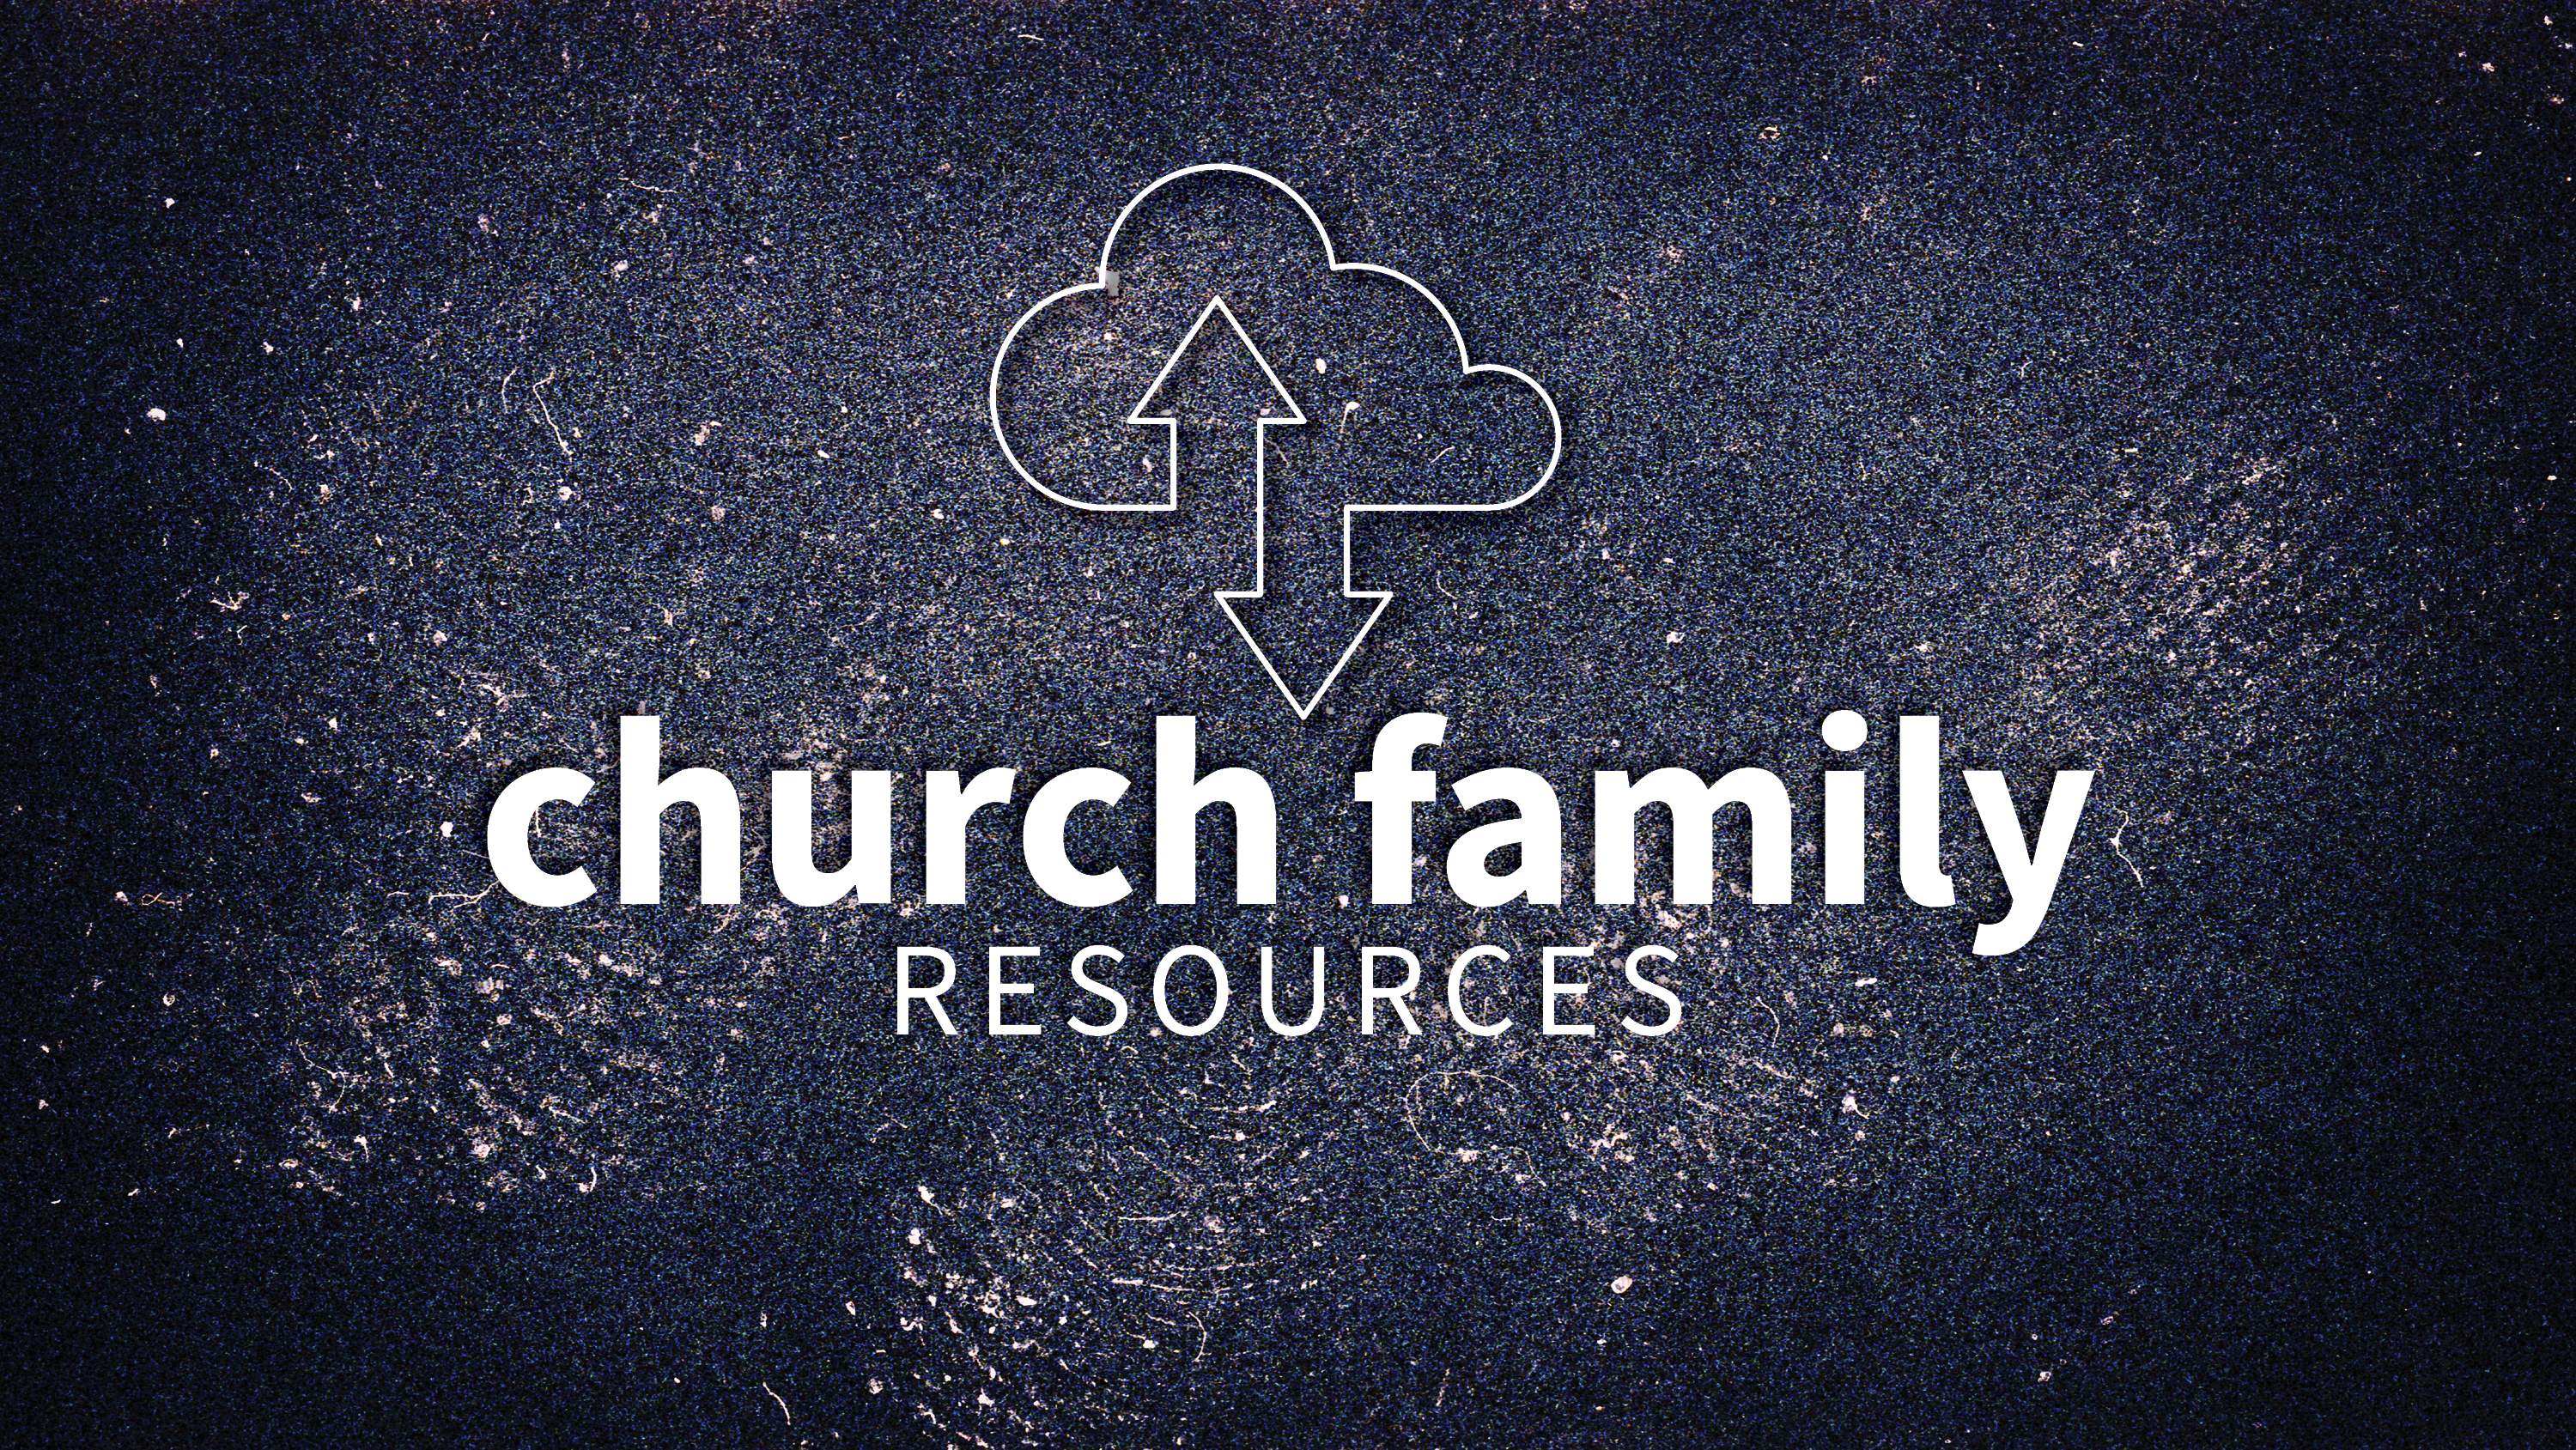 churchfamily resources